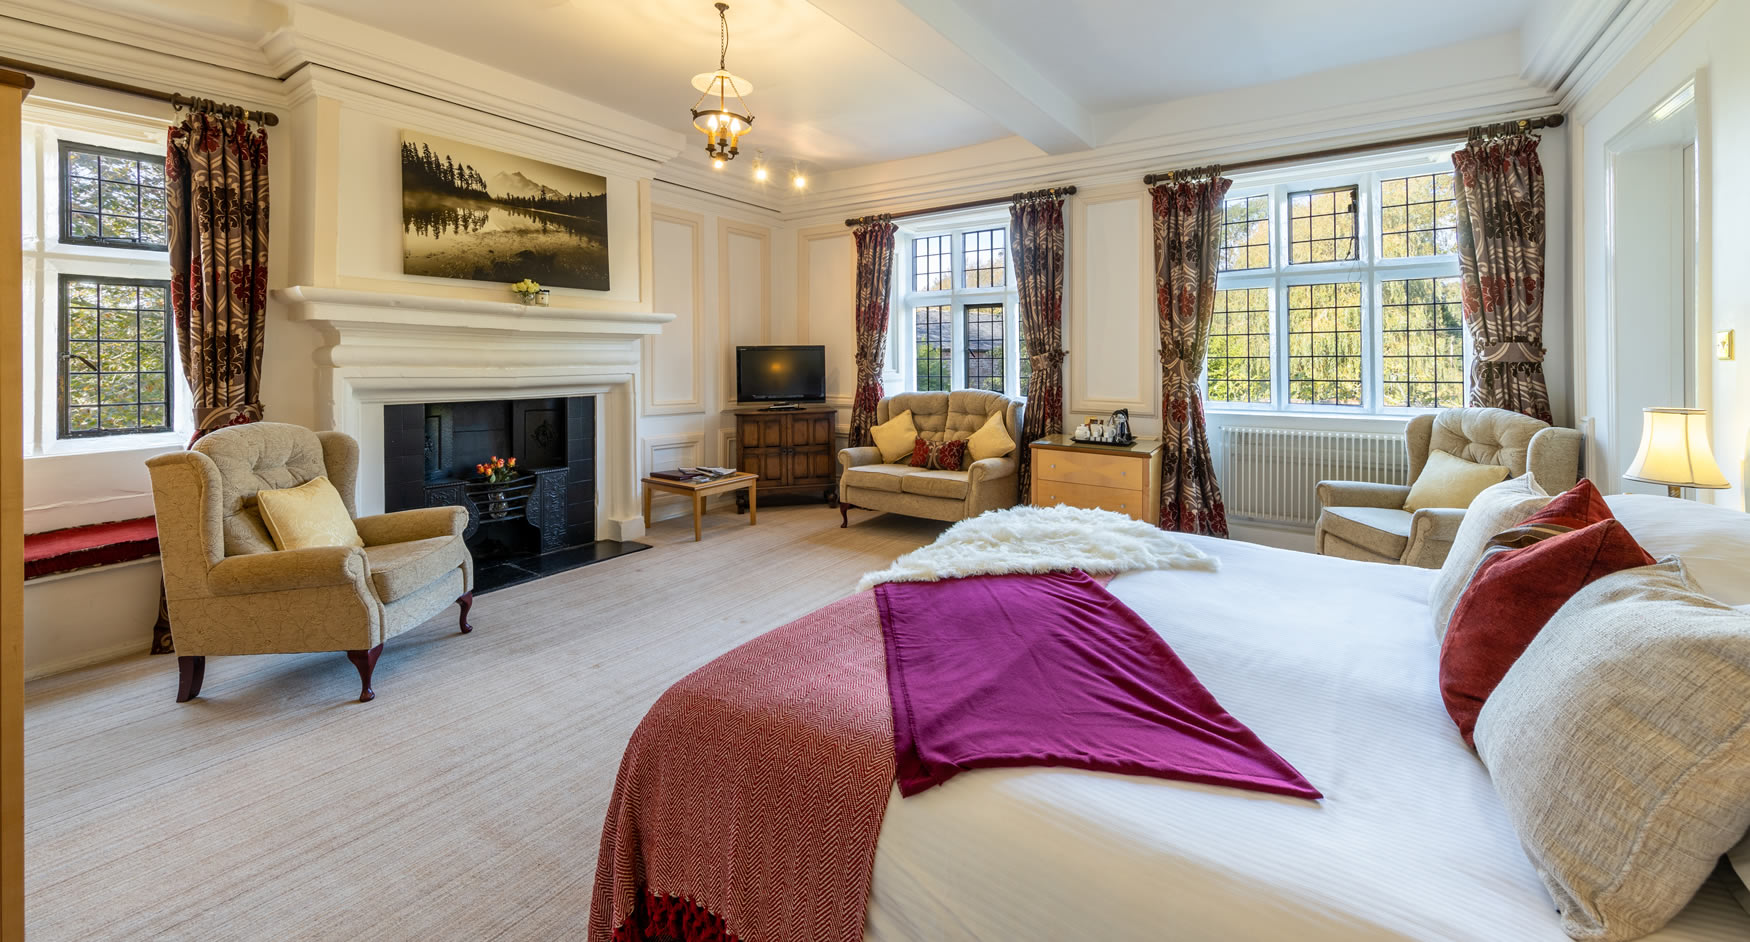 Bedrooms at Sella Park Country House Hotel